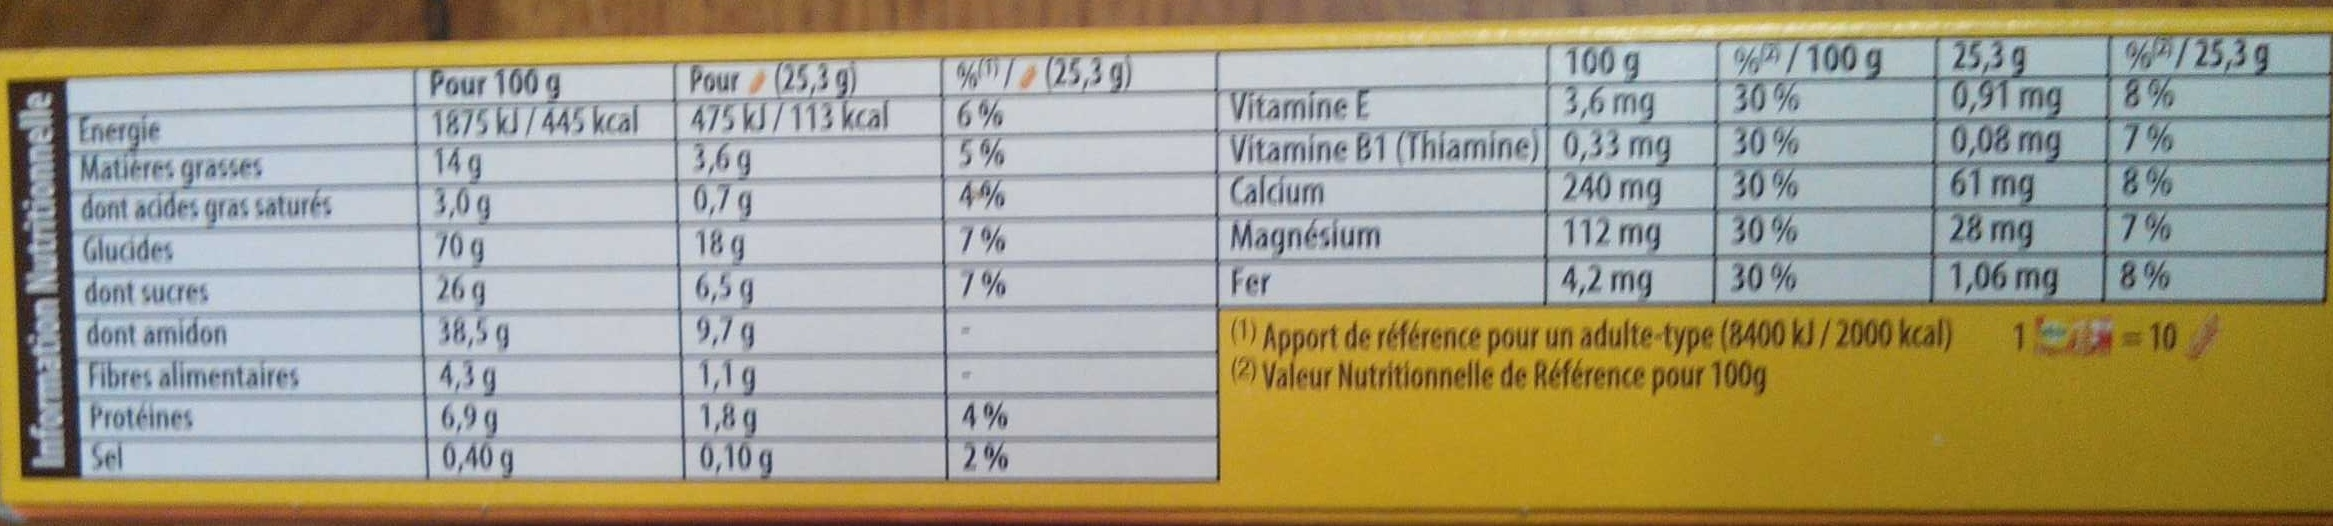 BelVita Duo Fourré Fraise Yaourt - Nutrition facts - fr